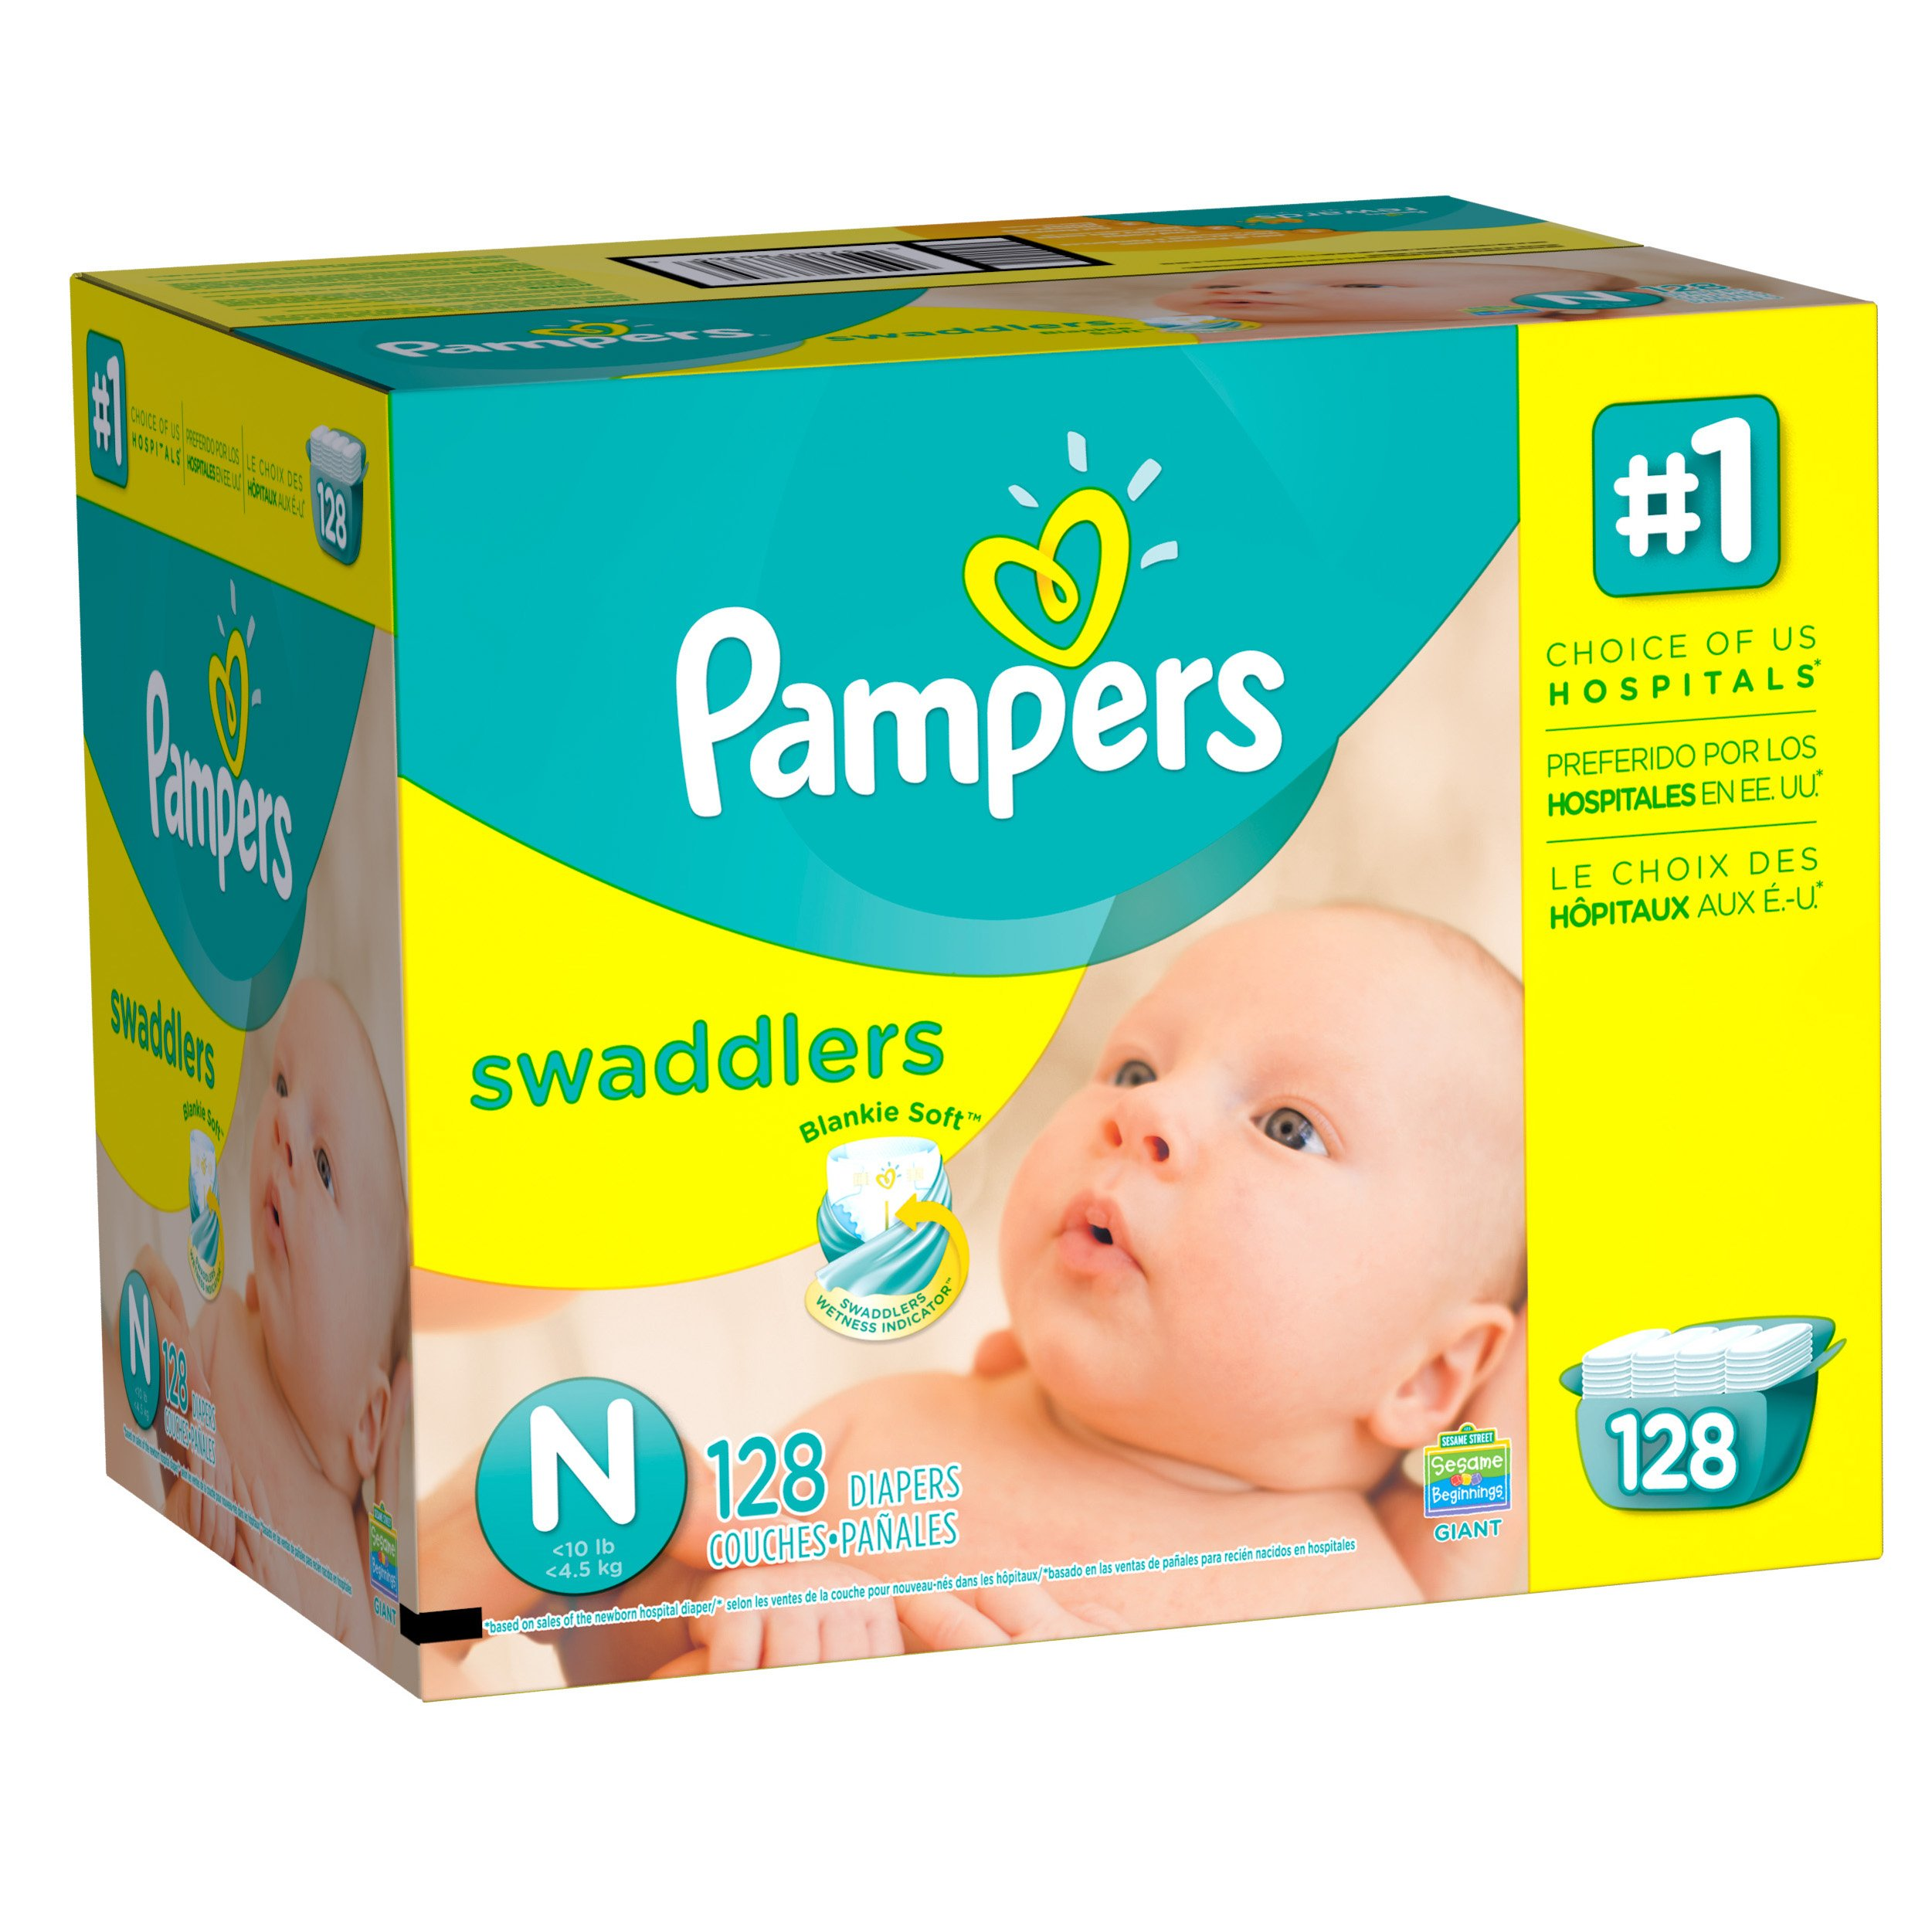 Pampers Swaddlers Disposable Diapers Newborn Size N (<10 lb), 128 Count,